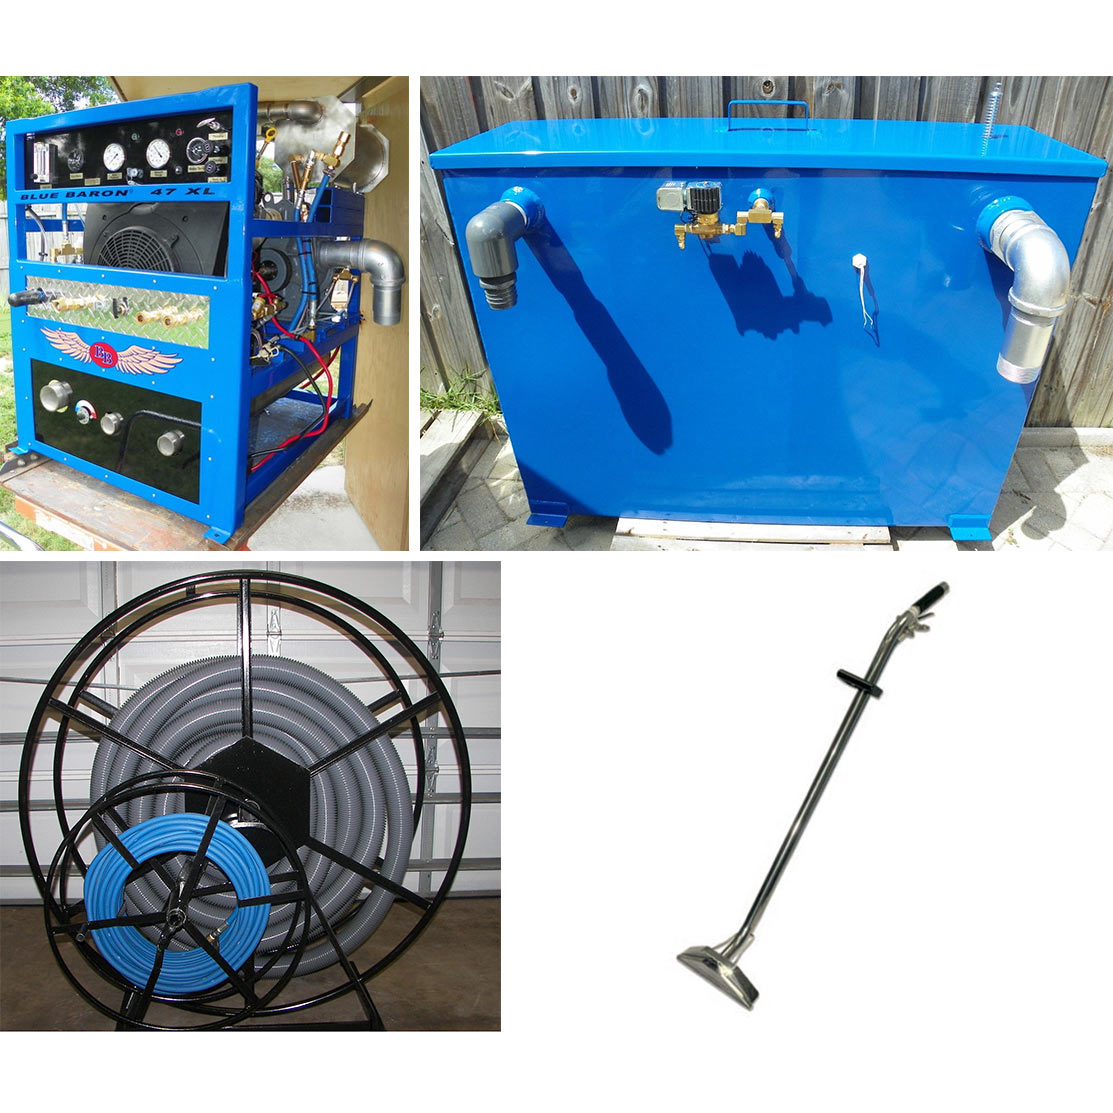 -Blue Baron 47XL 32.5 hp 4LR Blower Truckmount Belt Drive 300 ft reel, 200 ft hose set, Wand Starter Package